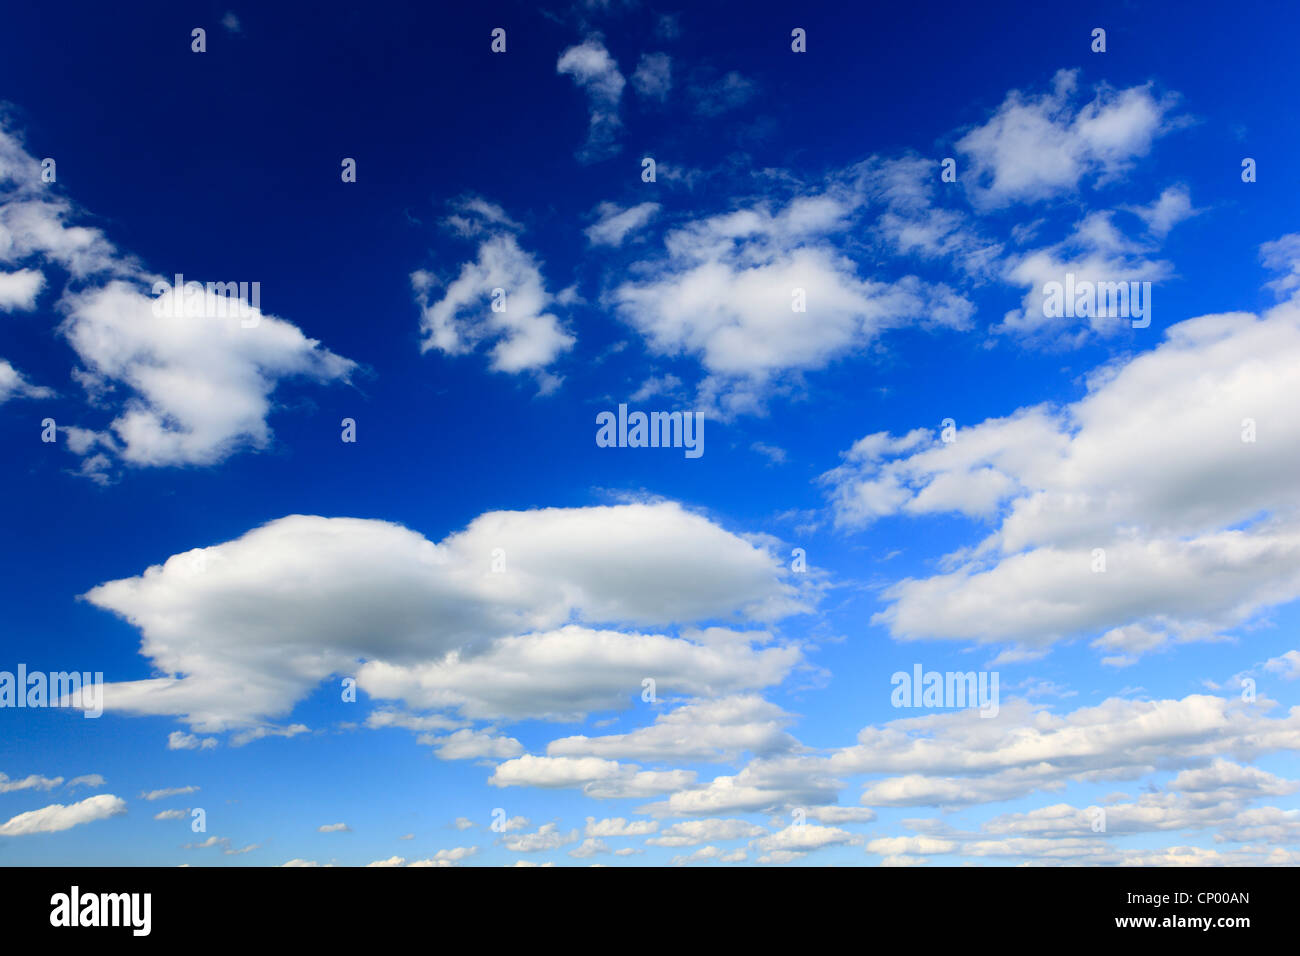 clouds at blue sky - Stock Image